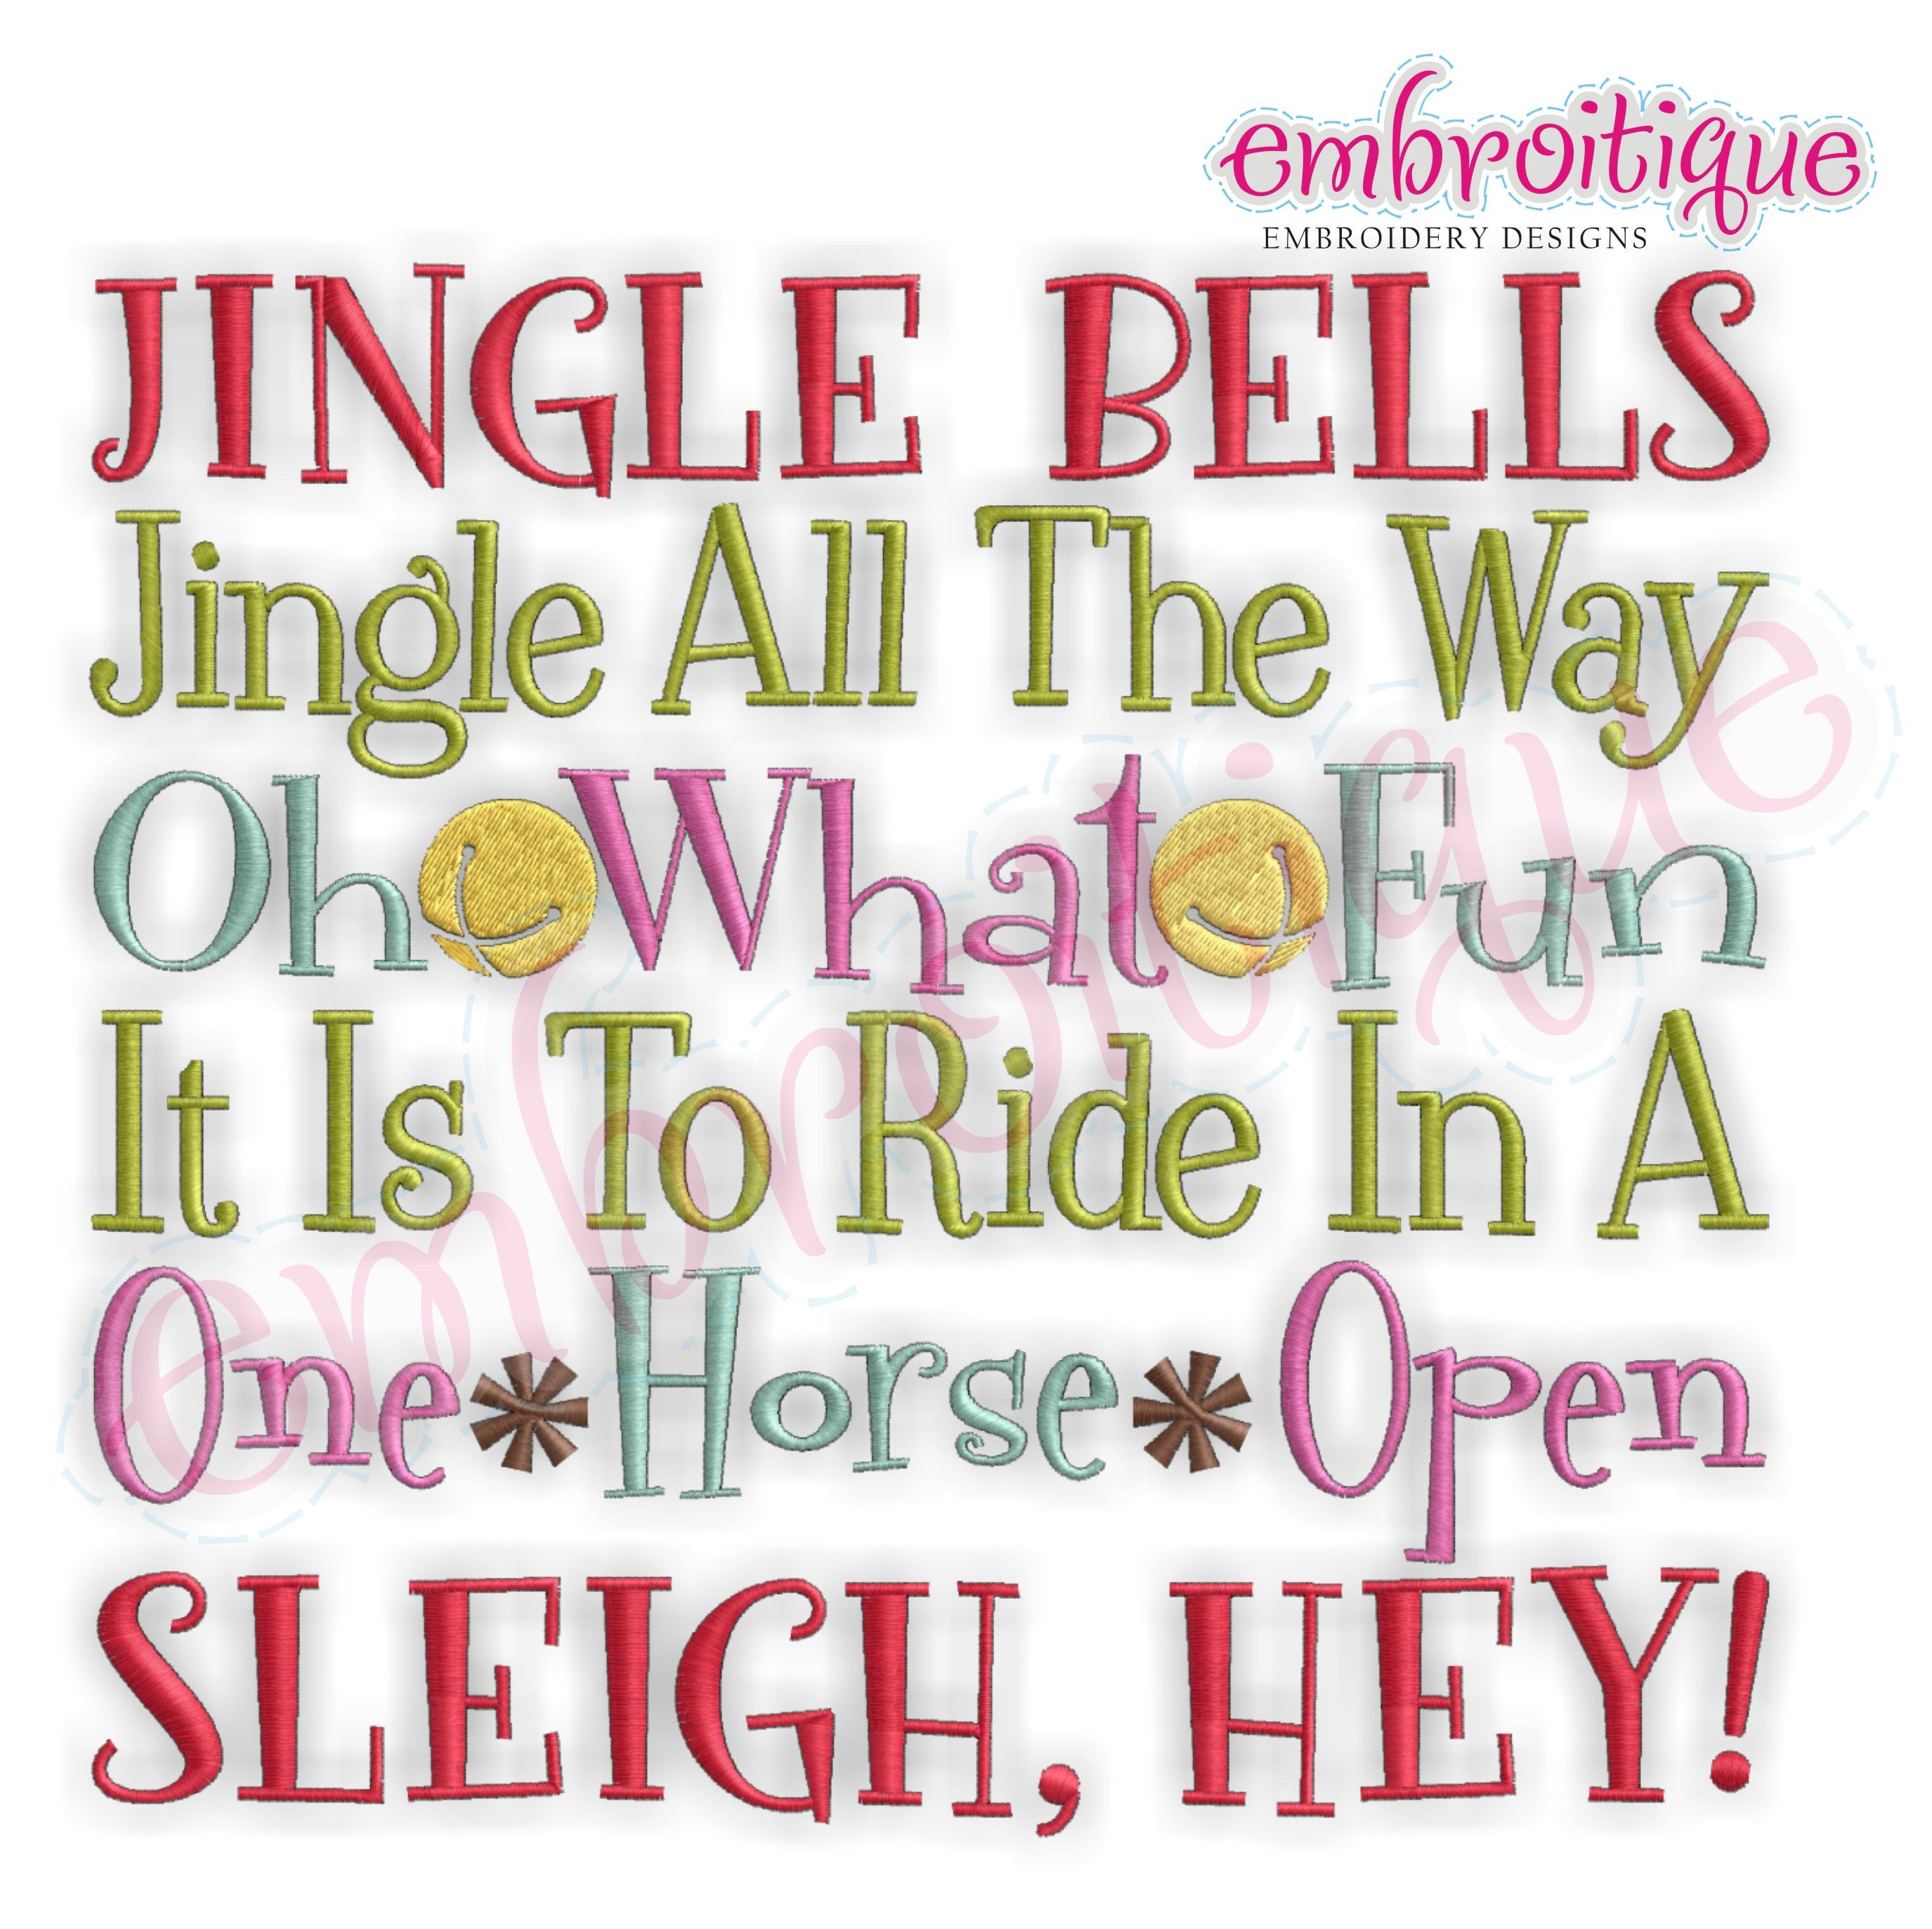 Home By Year Created 2012 Oct Dec Jingle Bells Jingle All The Way Oh What Fun It Is To Ride On A One Horse Open